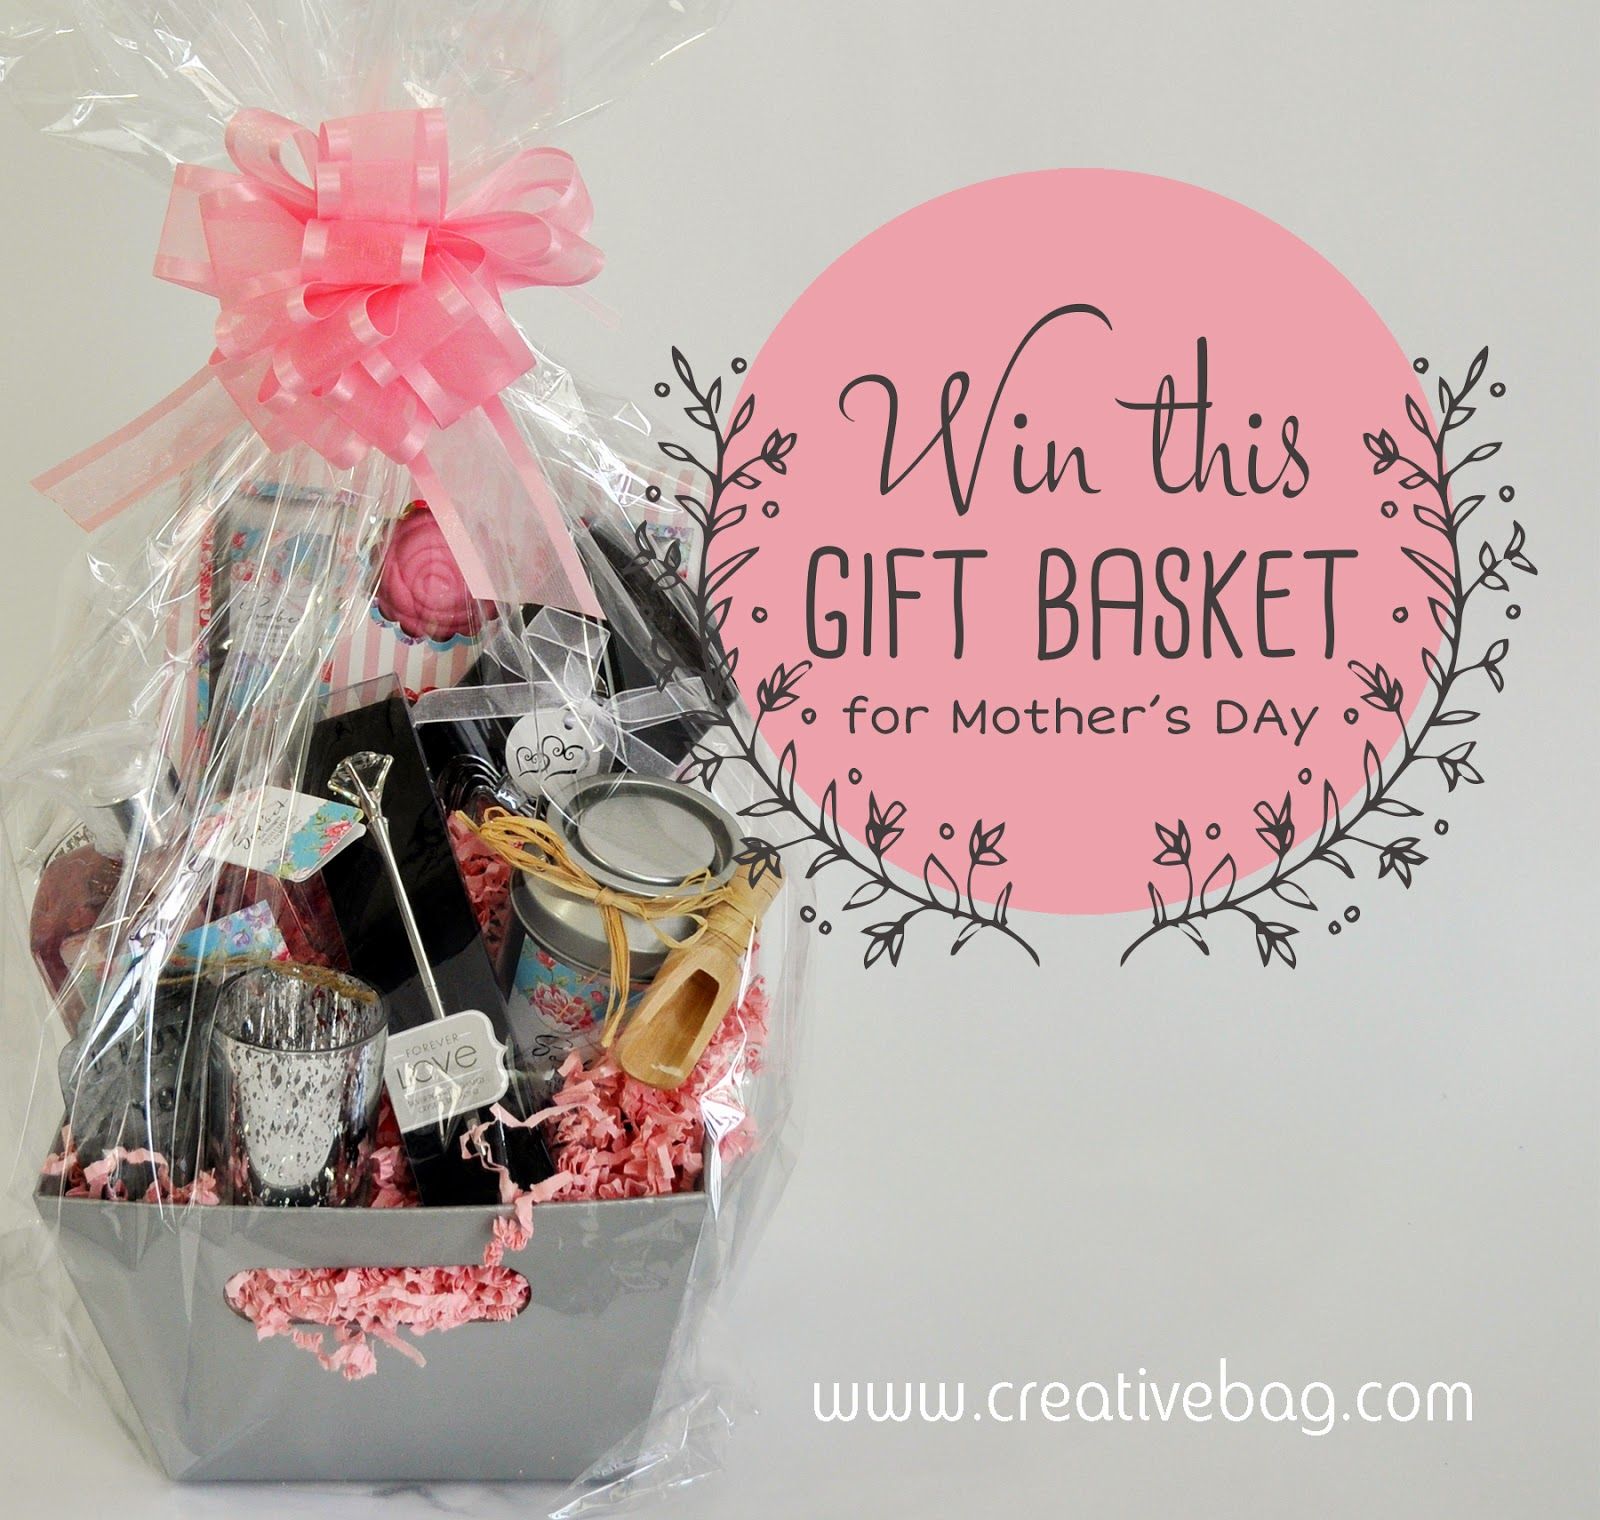 win this gift basket for Mother's Day 2014 from CreativeBag.com